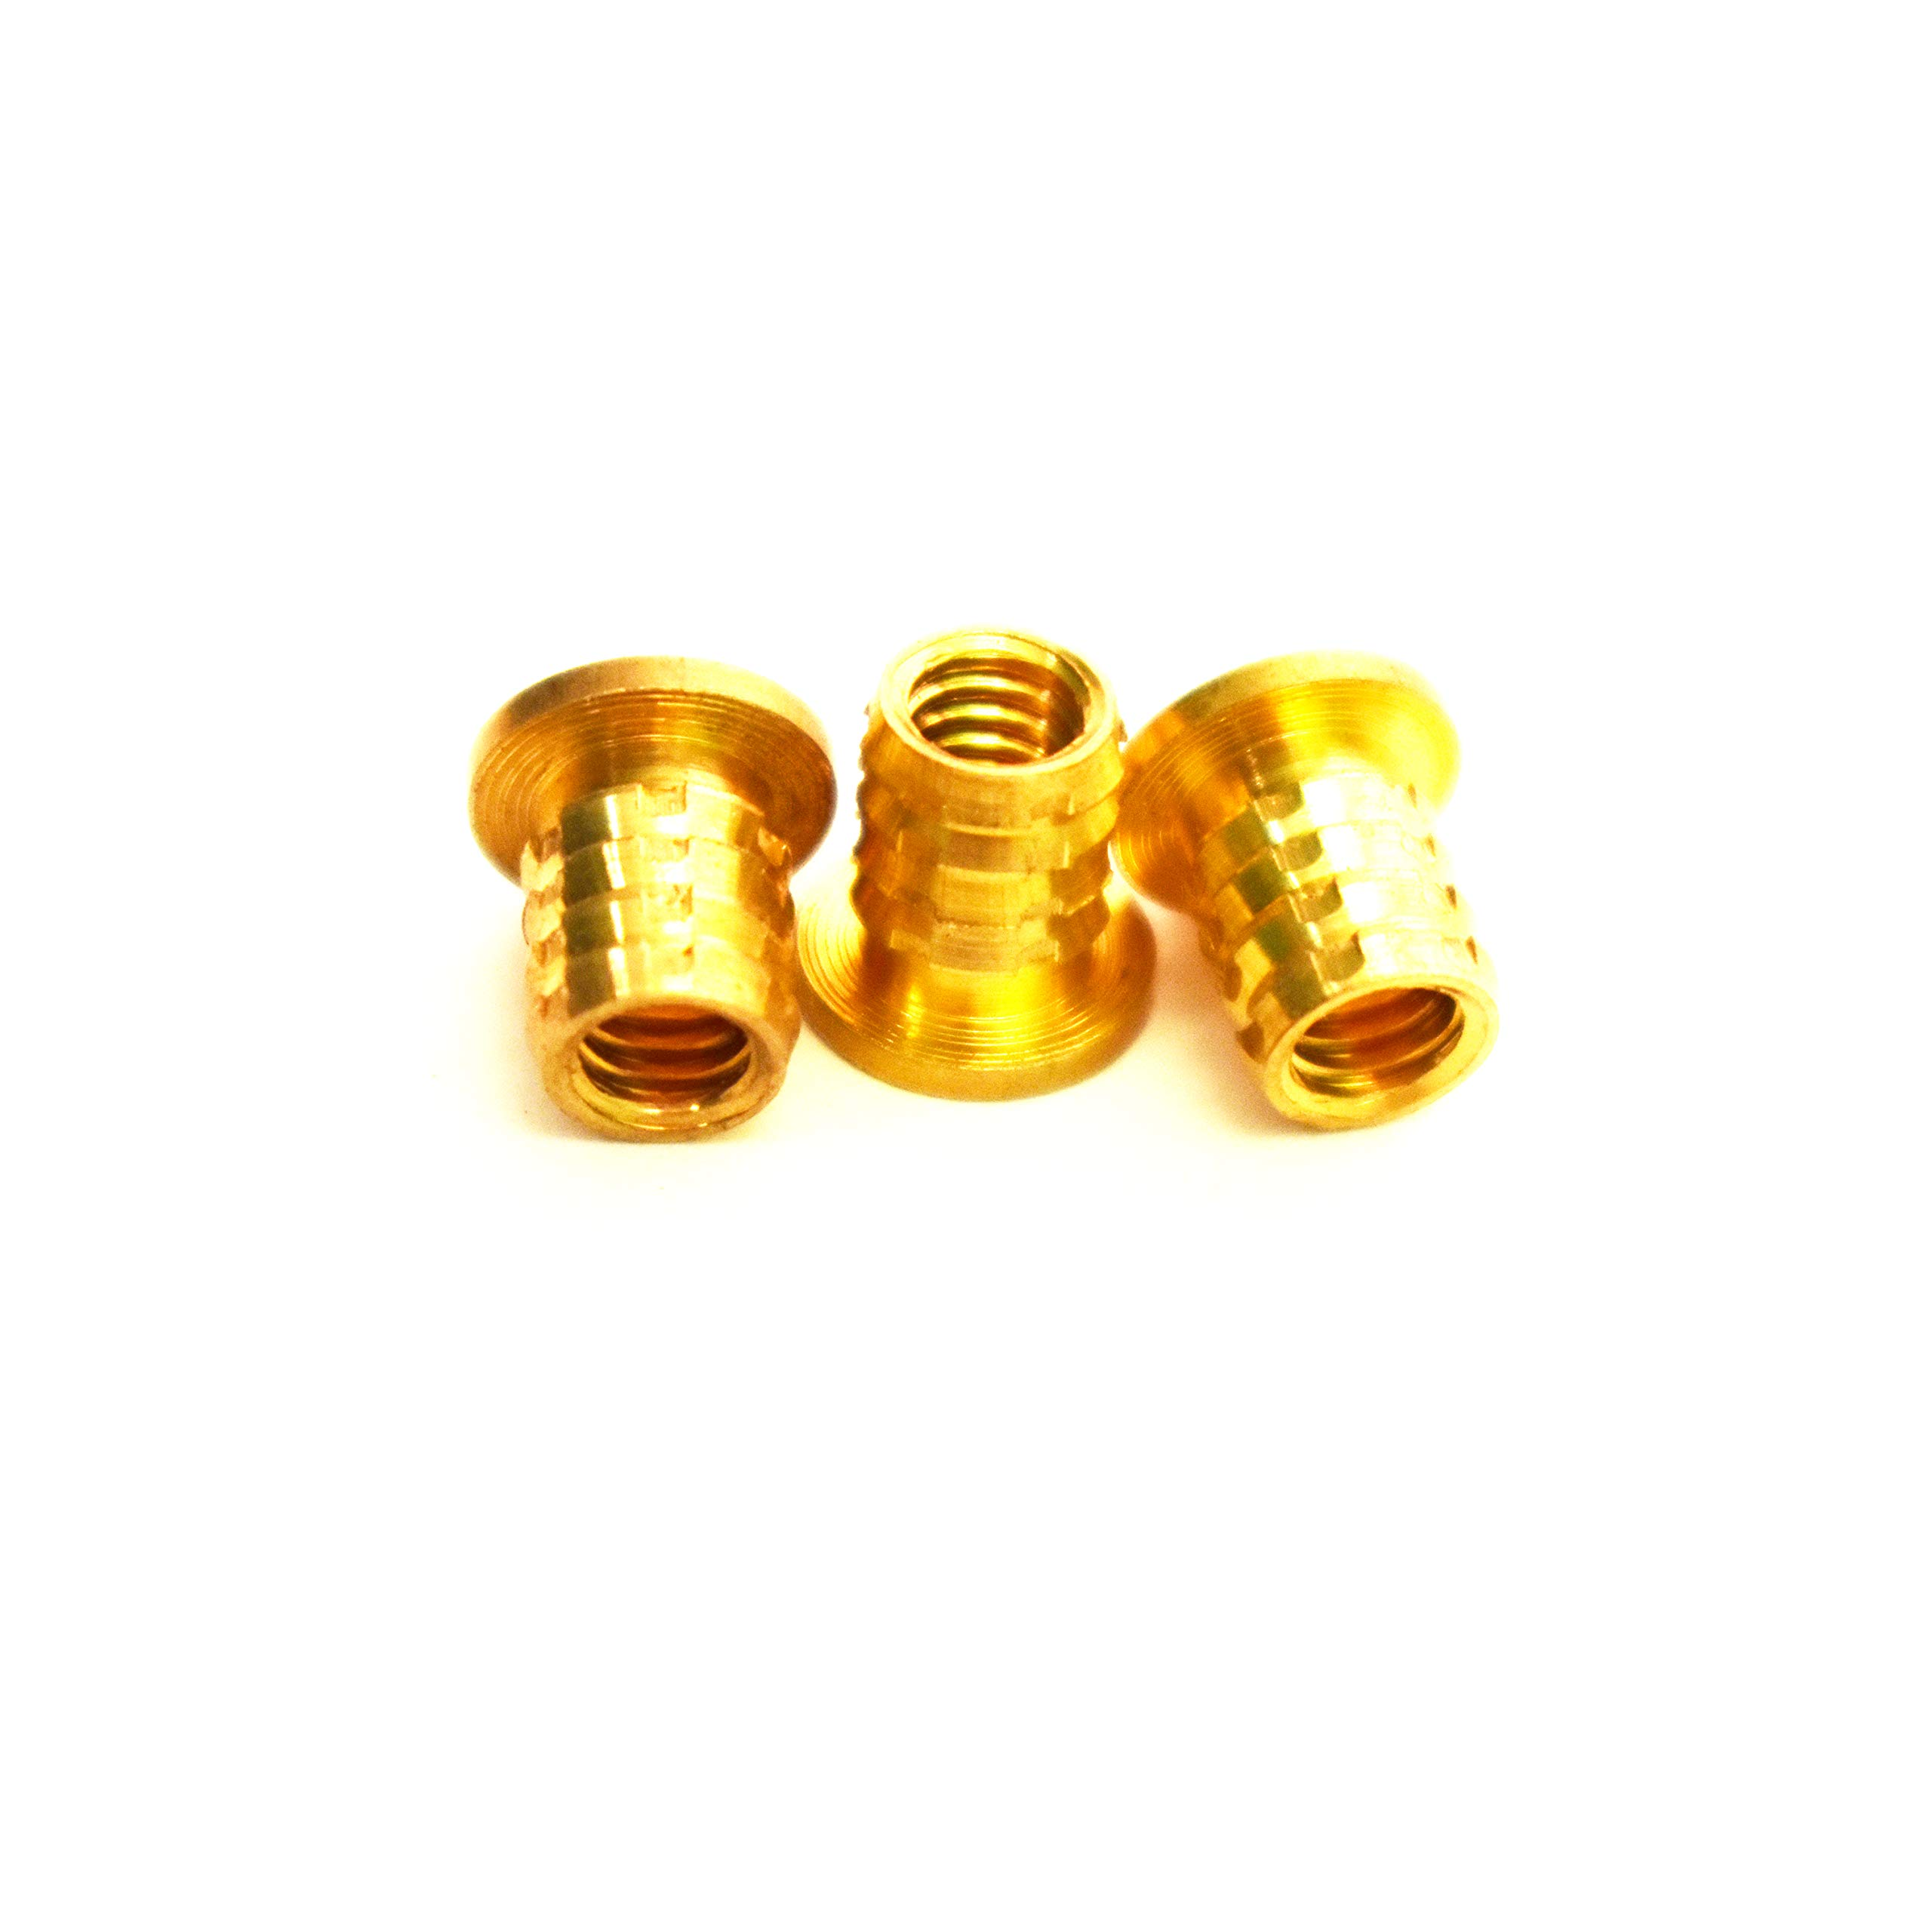 [ J&J Products ] 8-32 Brass Insert 50pcs, 8mm OD, 8 mm Length, Female 8-32 Thread, Press Fitting or Heat Sink or Injection Molding Type, 50 pcs by J & J Products